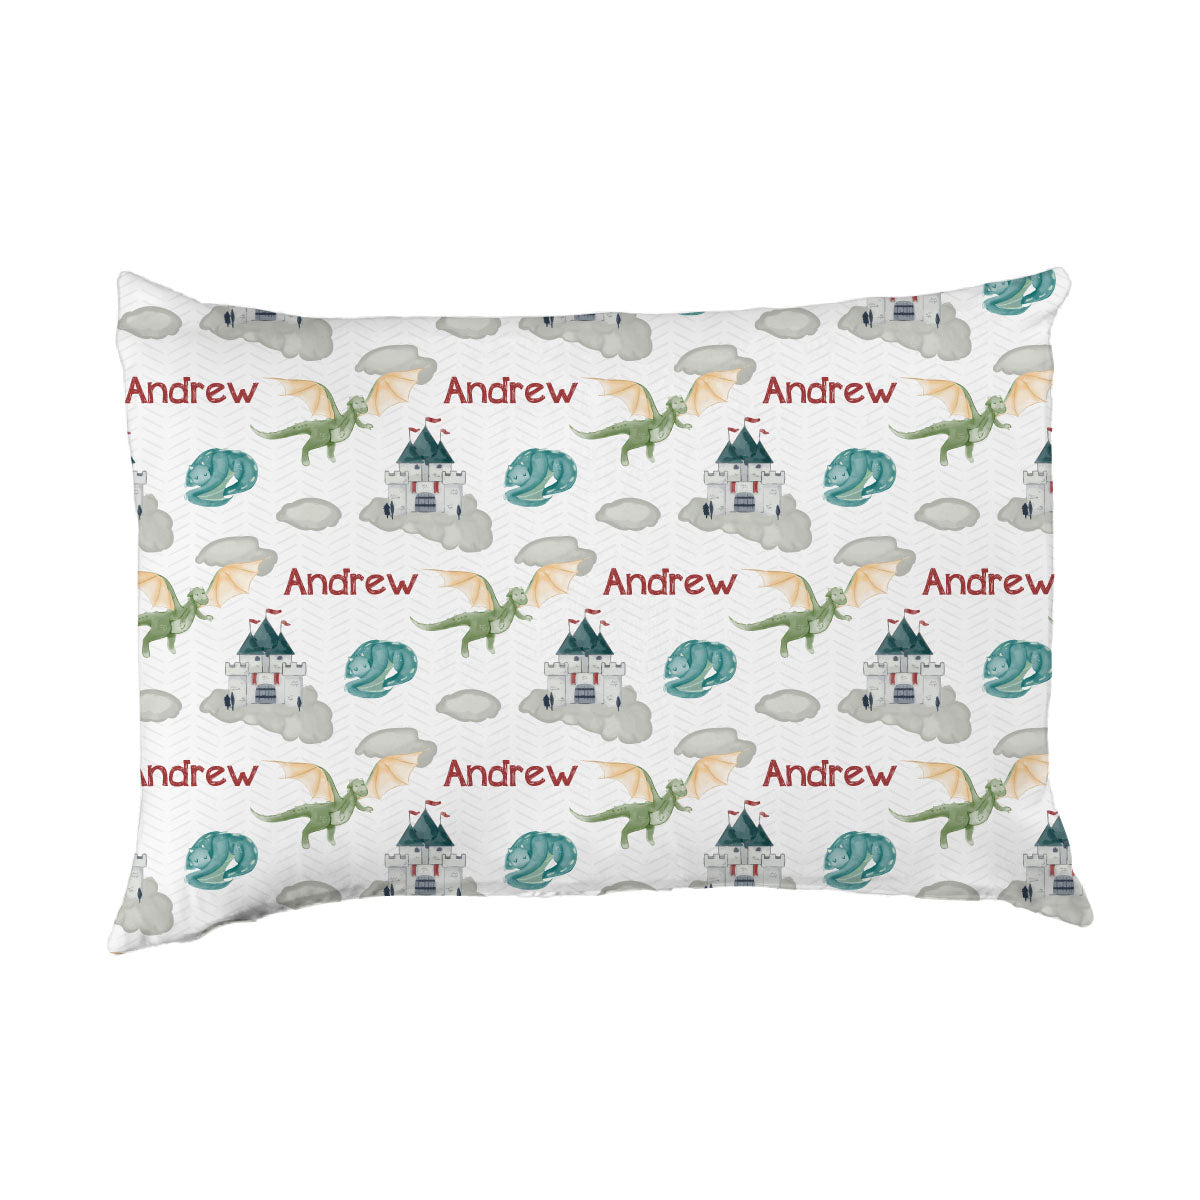 Andrew's Castle and Dragons | Big Kid Pillow Case